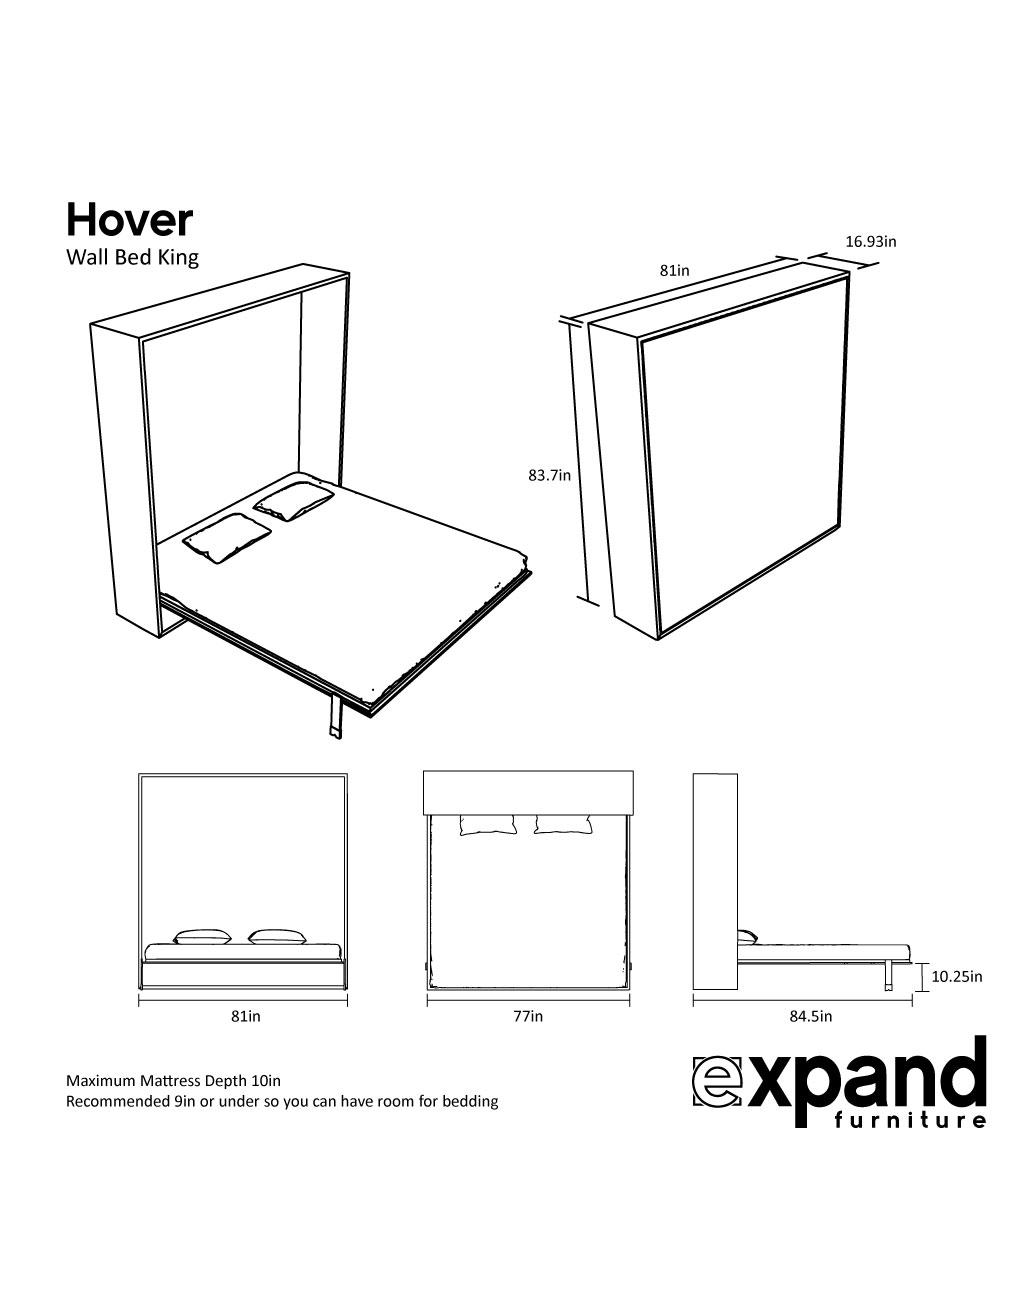 Hover modern king murphy bed expand furniture folding tables hover modern king murphy bed expand furniture folding tables smarter wall beds space savers ccuart Gallery